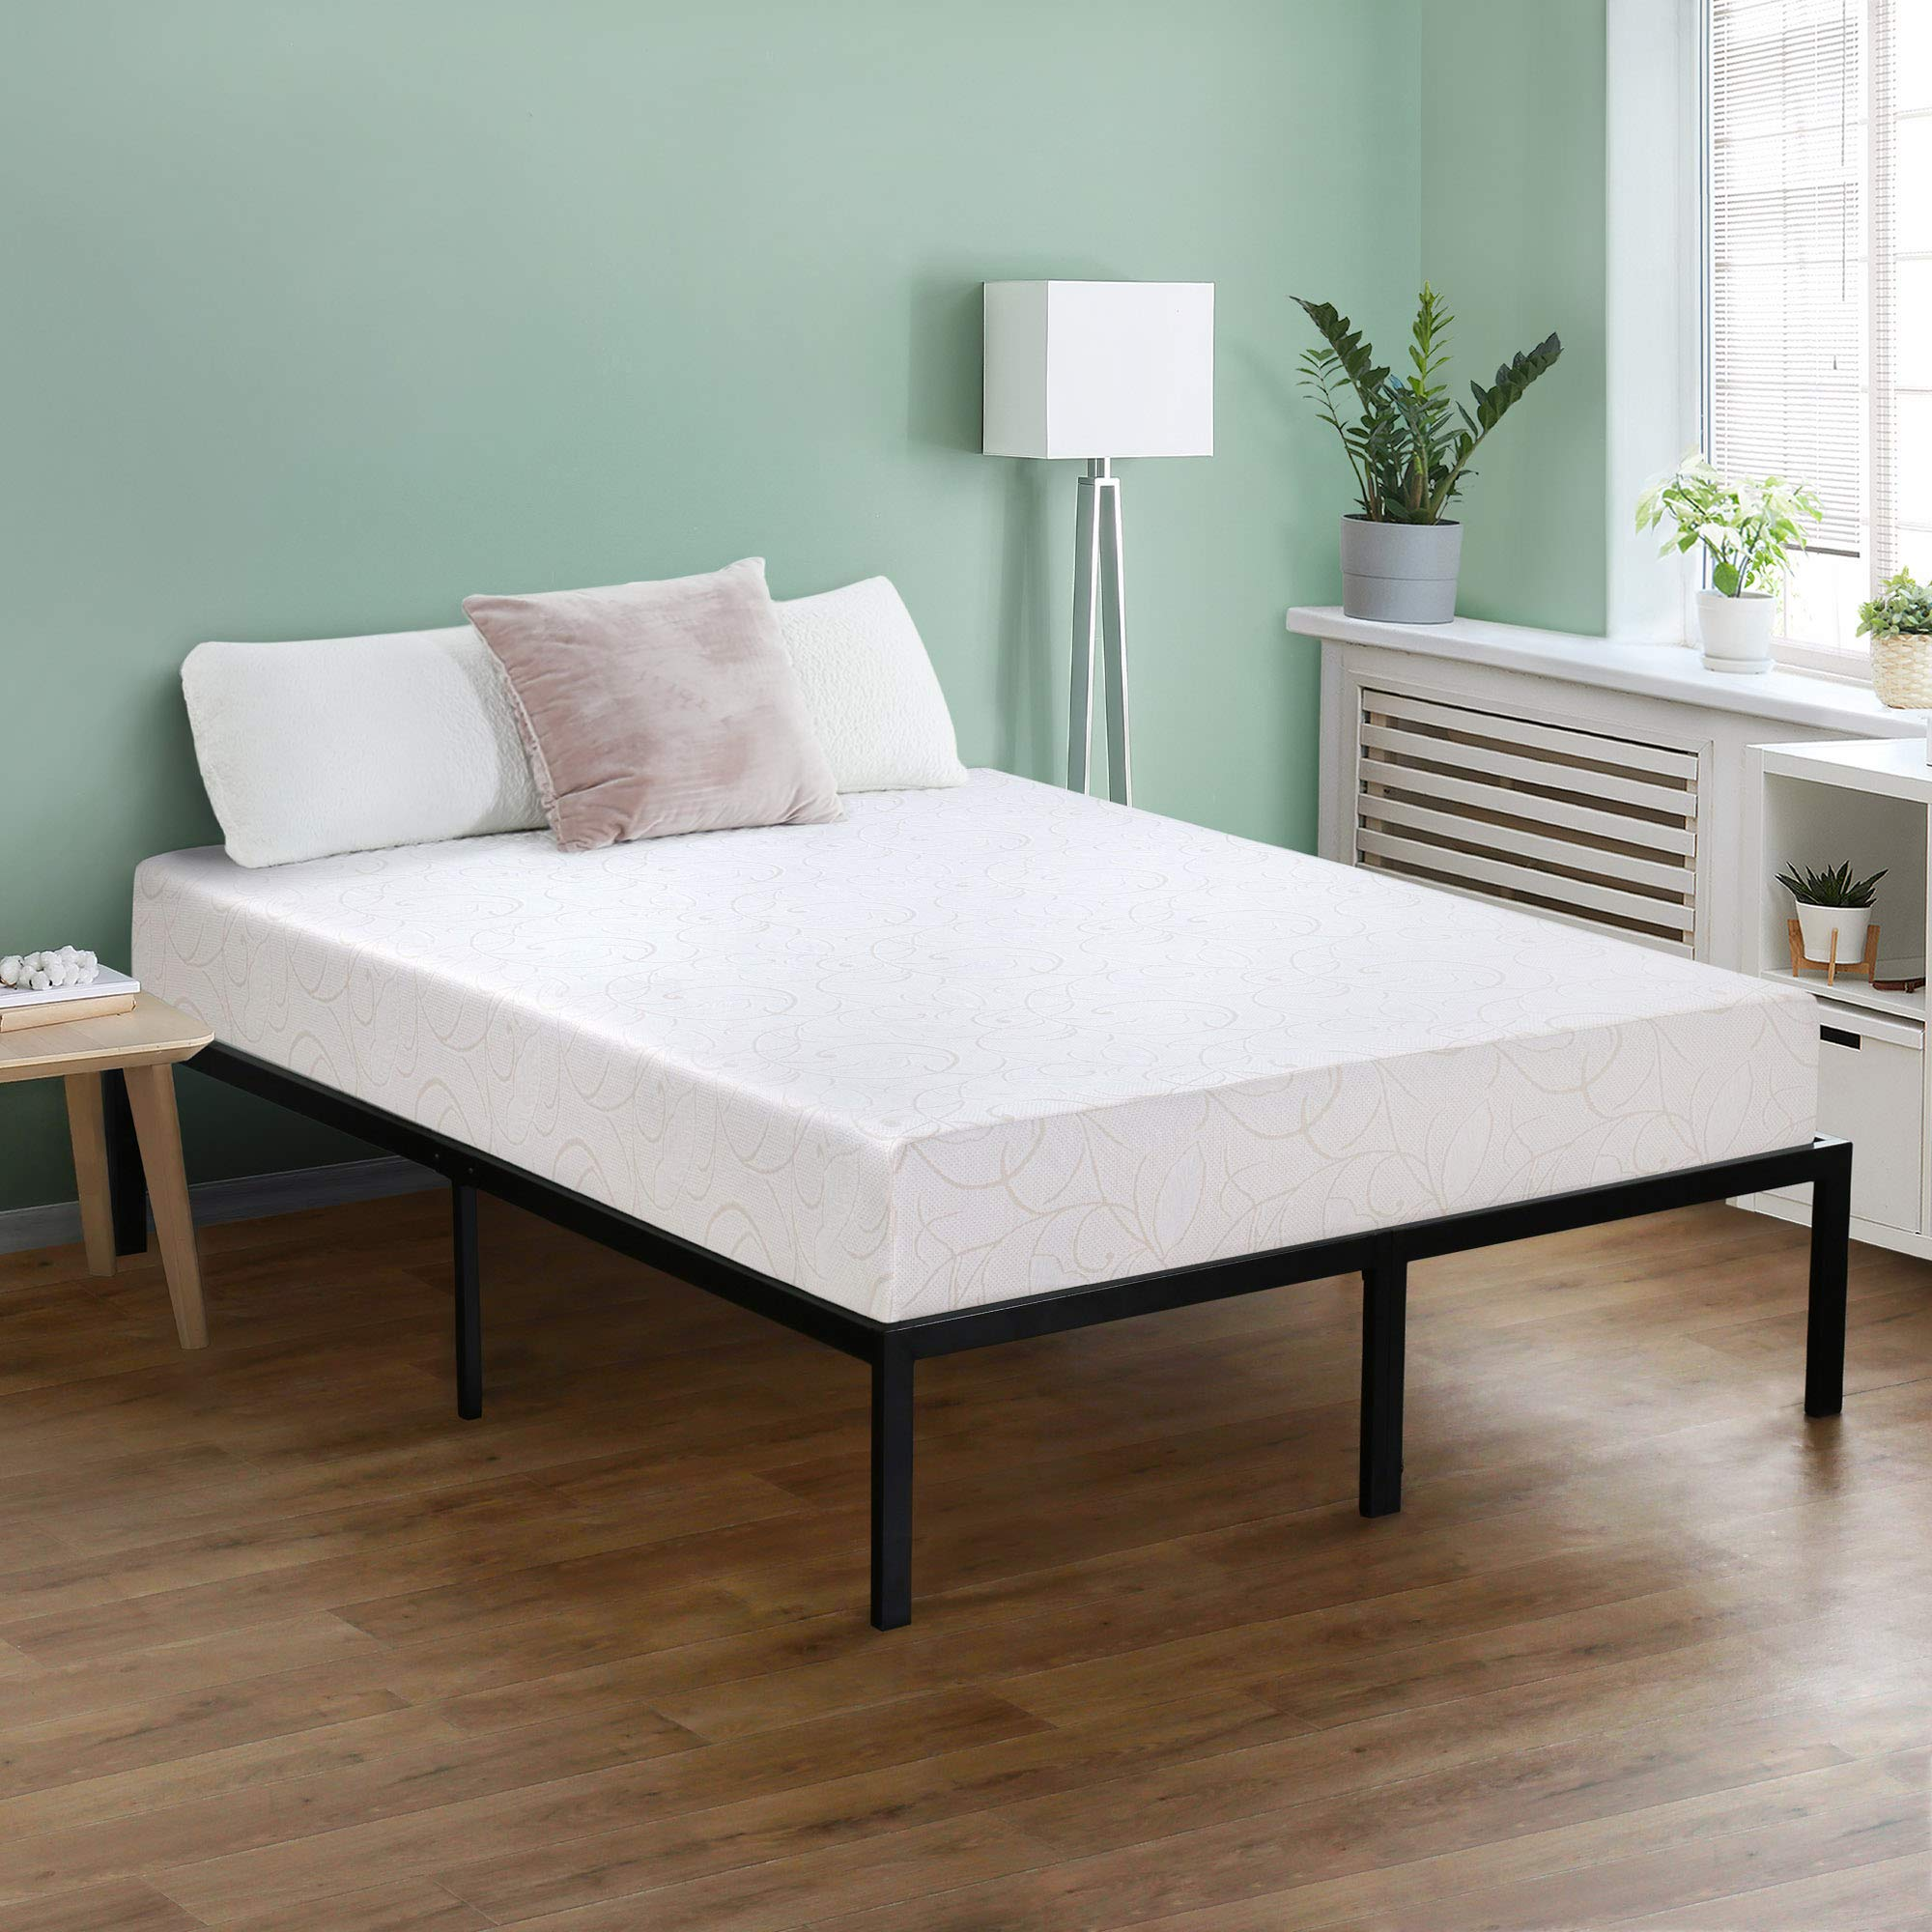 Olee Sleep 7 Inch I-Gel Deluxe Comfort Memory Foam Mattress,Queen,Beige,White, CertiPUR-US, Multi-layered foam, Supporting Body Weight,Comfort and Relieve pressure